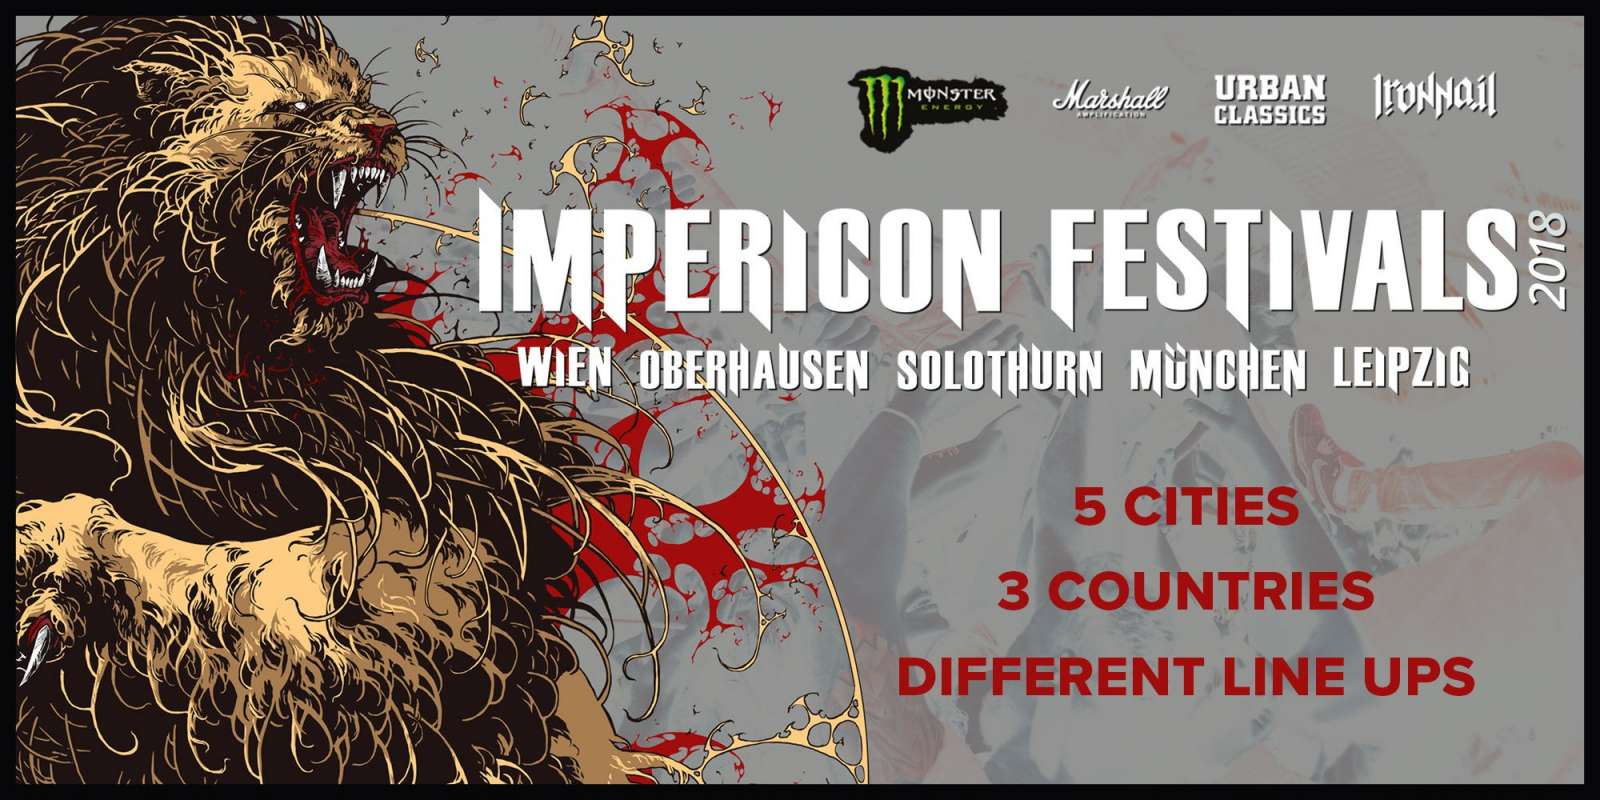 2018 Web Events Impericon Music Festival Images